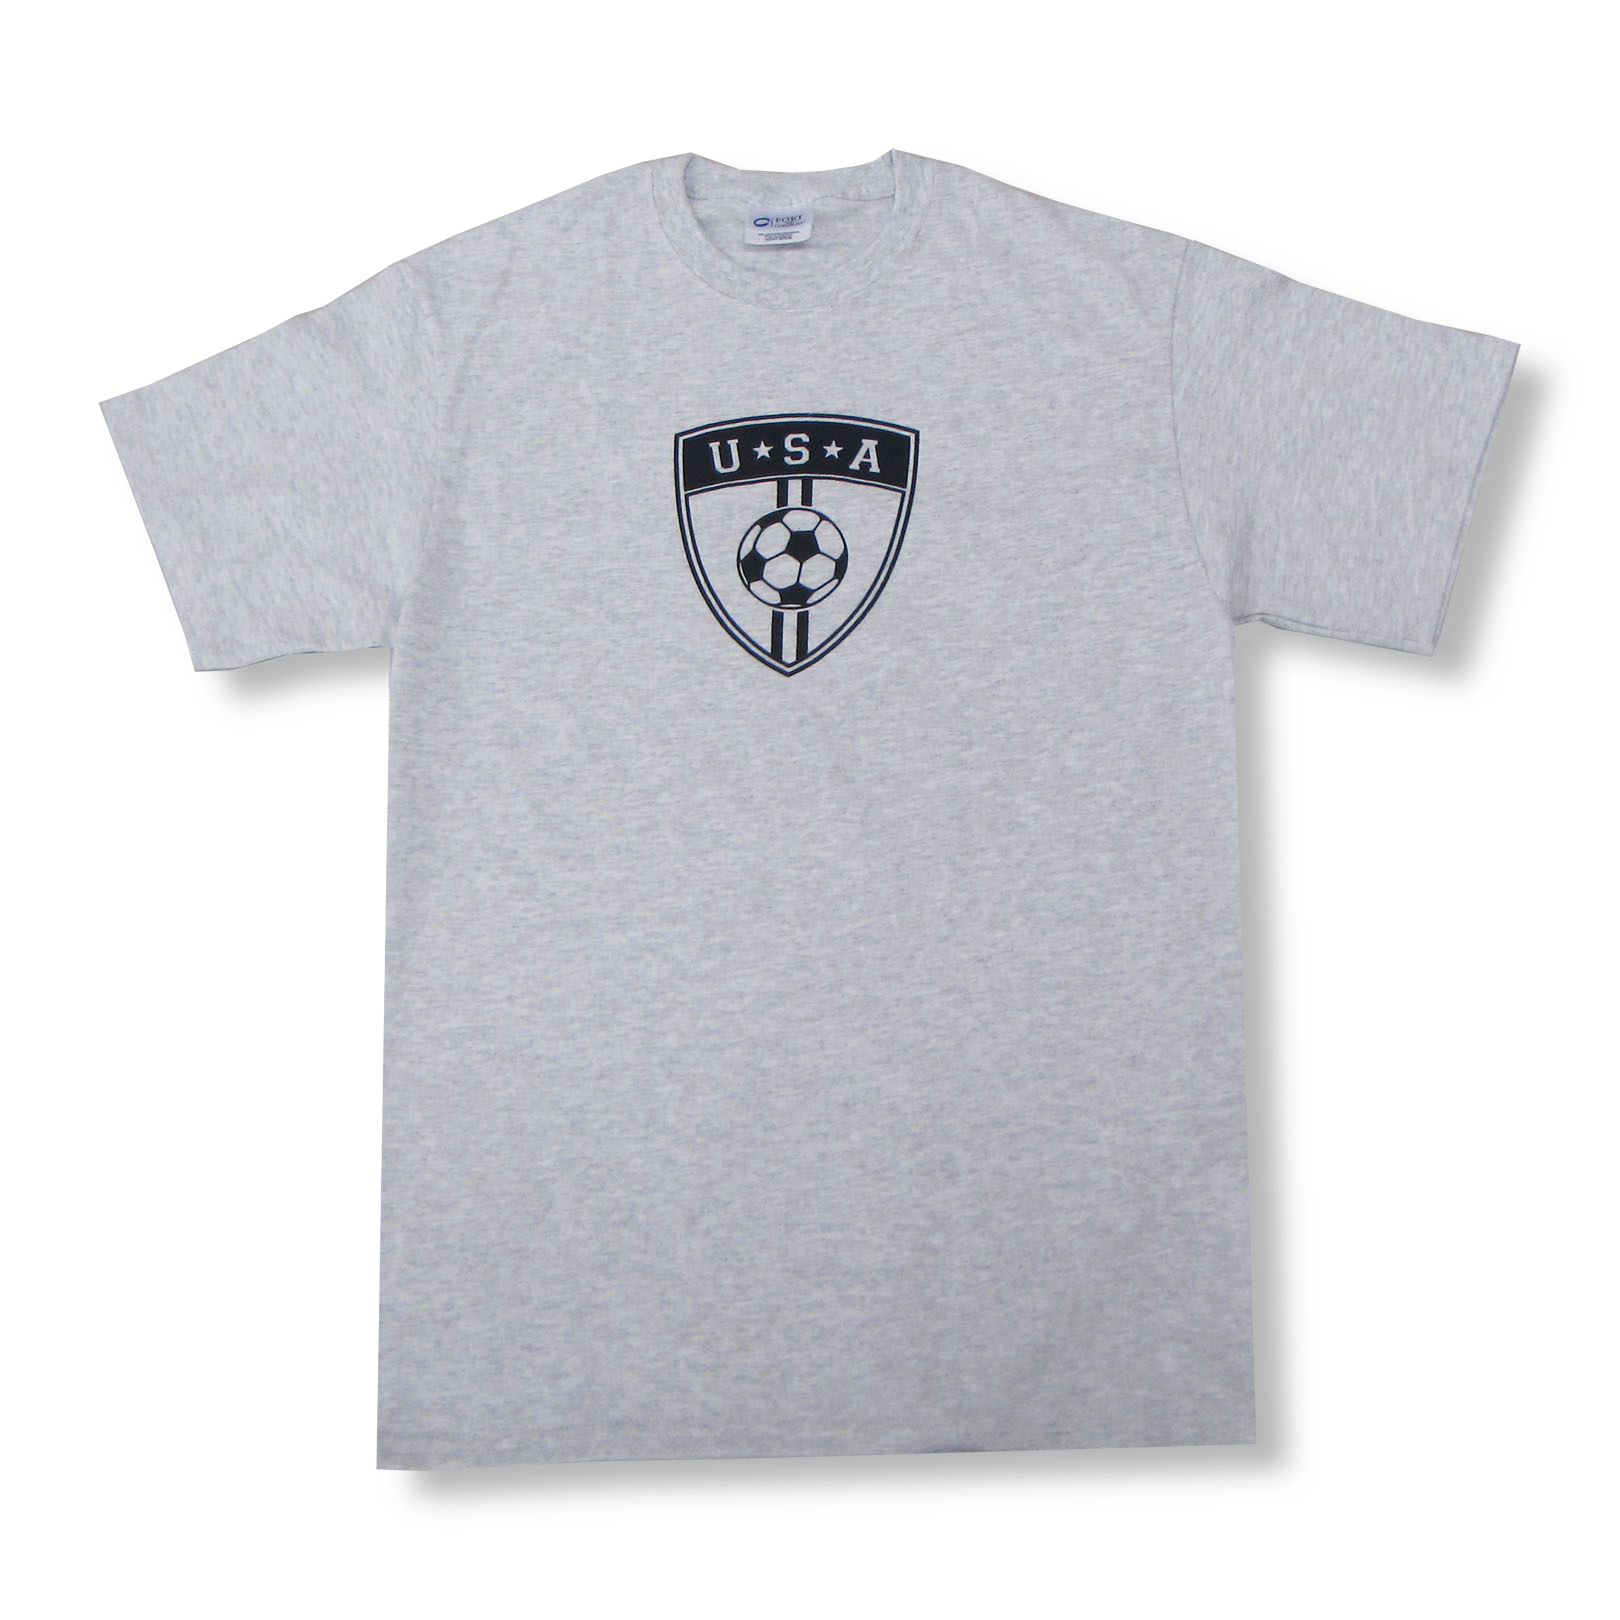 USA soccer T-shirt in ash gray by Code Four Athletics